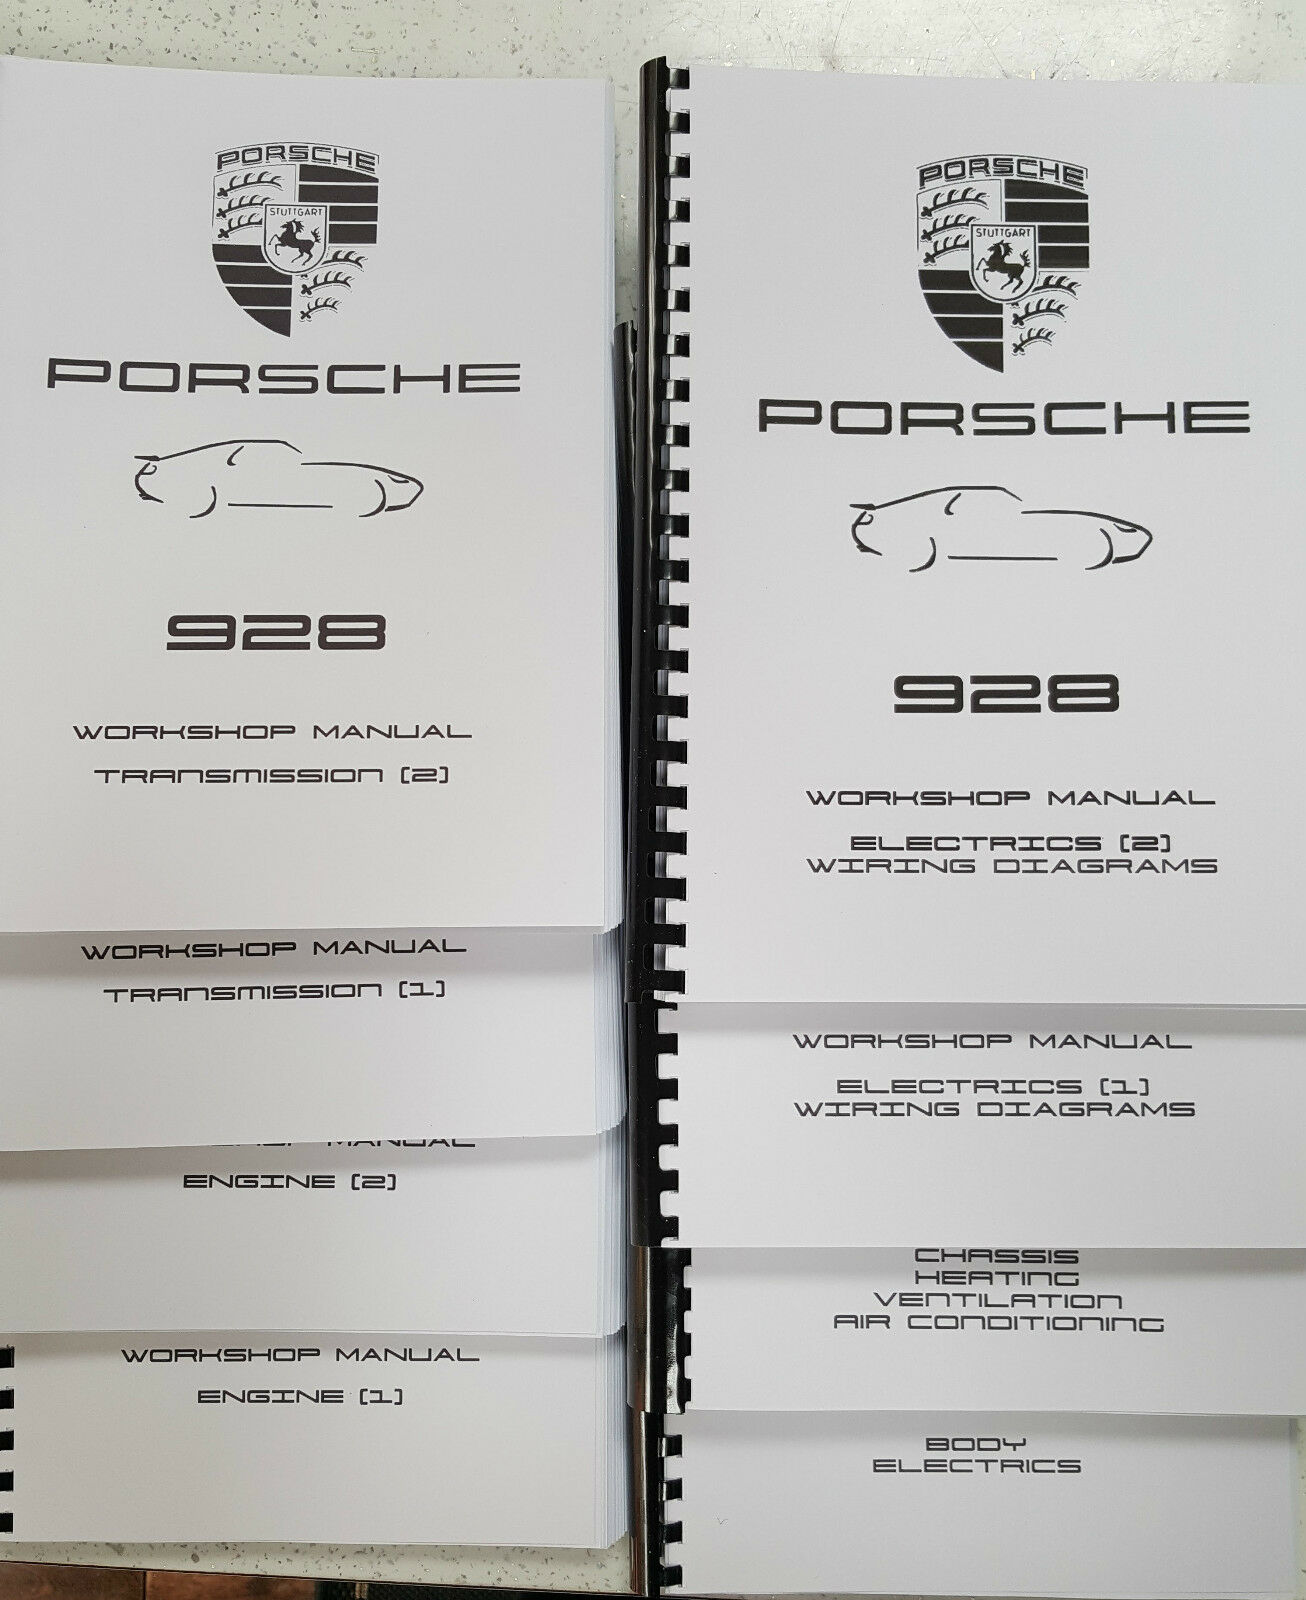 PORSCHE 928 WORKSHOP MANUAL REPRINTED 1978-1994 INC WIRING DIAGRAMS